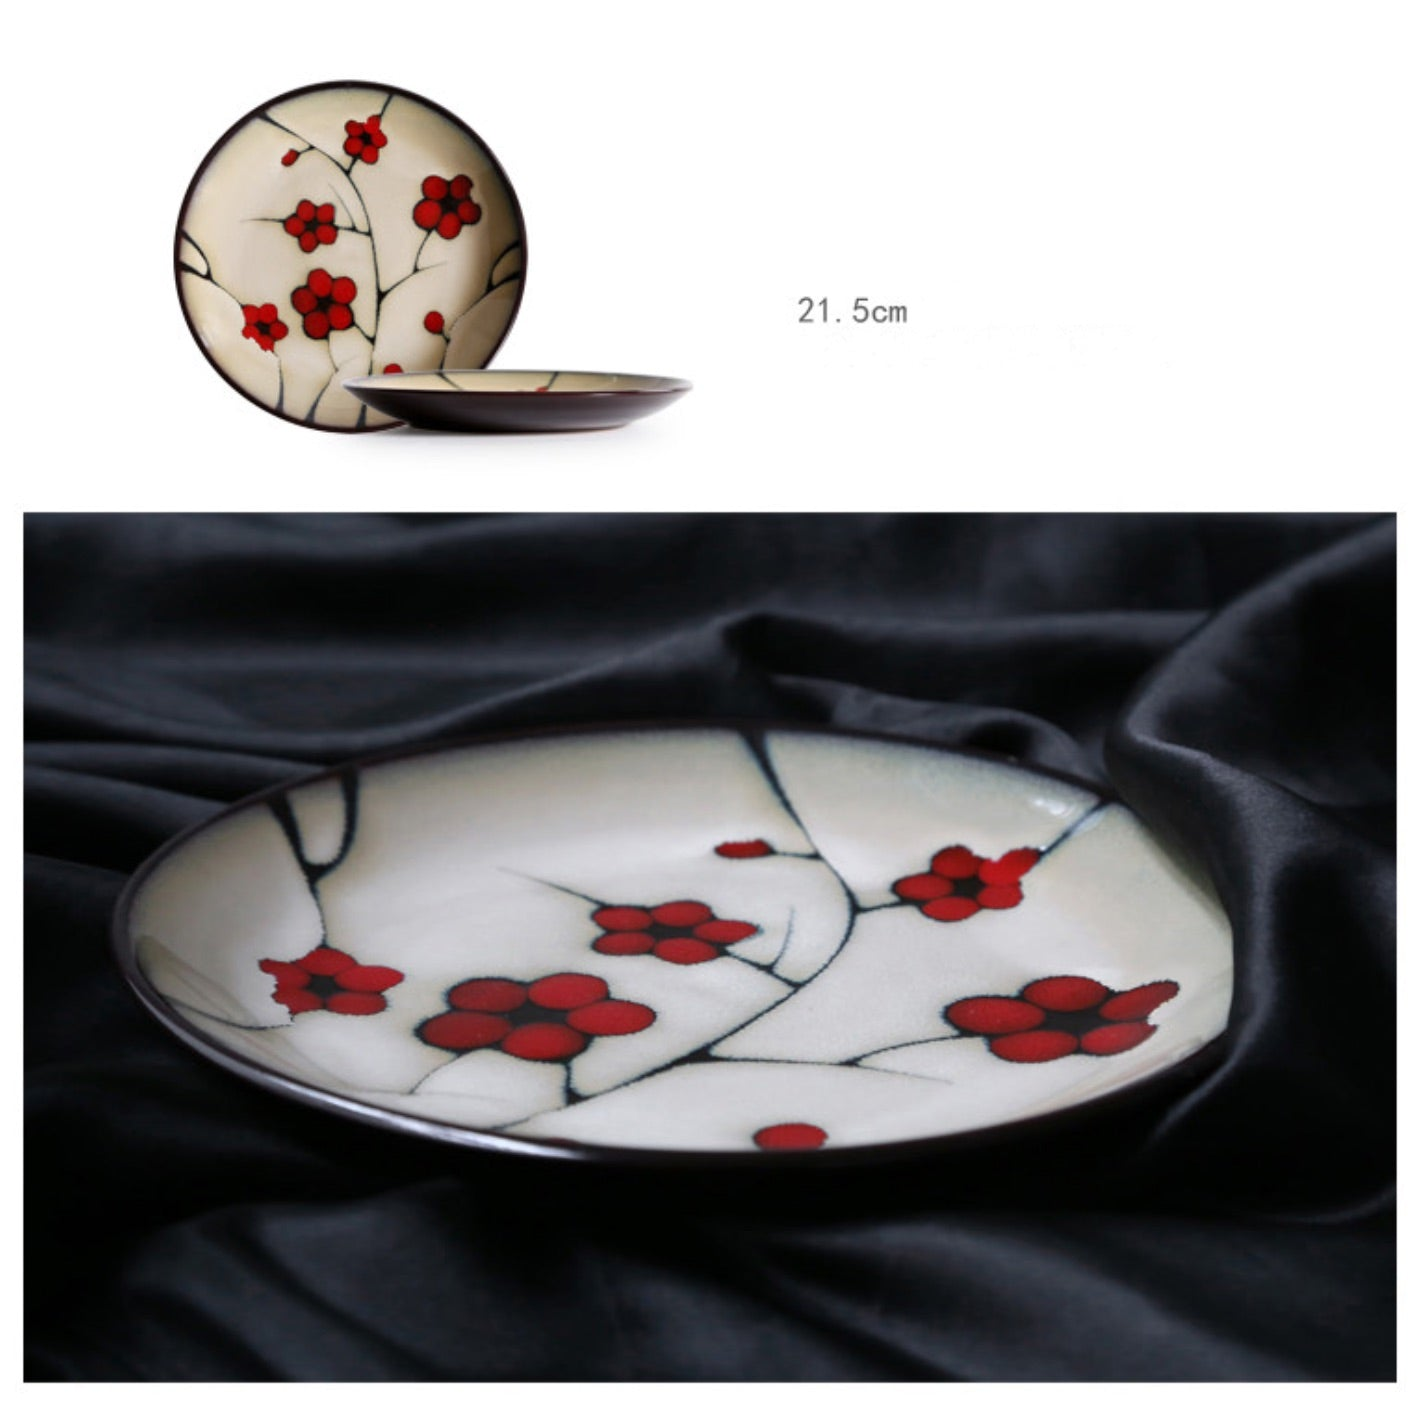 Japanese Red Plum Porcelain Plate Dish Tableware Japan On-Glaze Ceramic Dinnerware Dinner Sets JPN Style N